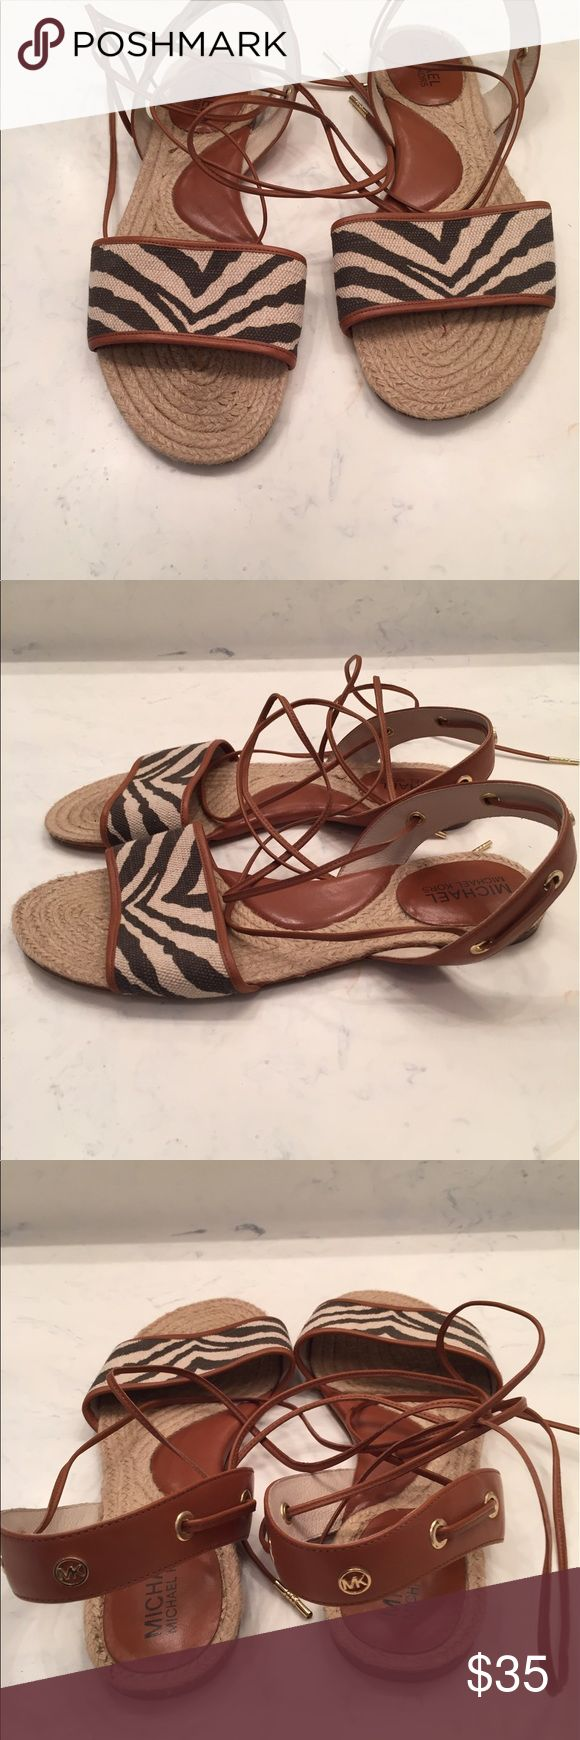 MICHAEL KORS Lace Up Sandals Great condition .  Cute lace up sandal.  Ready for the warm weather.  Cute with shorts, skirts and leggings. Michael Kors Shoes Sandals